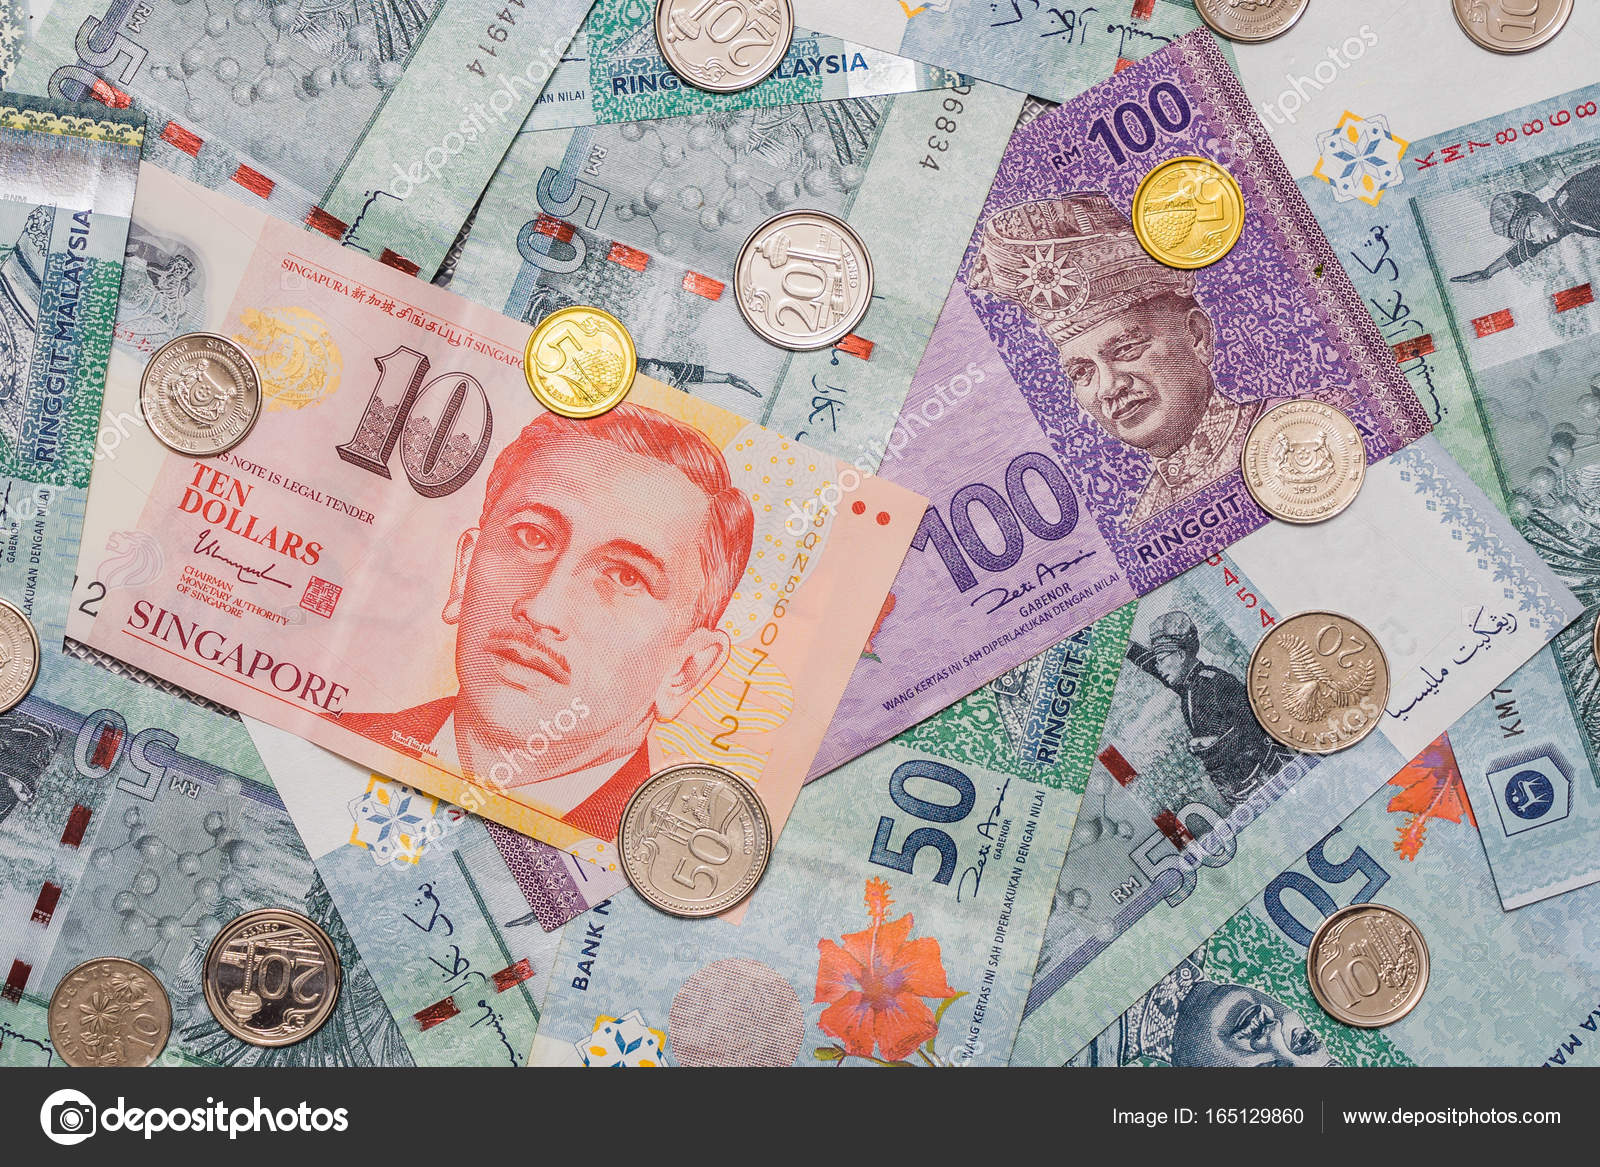 Singapore Dollar On Top Of Malaysian Ringgit Currency On Backgro